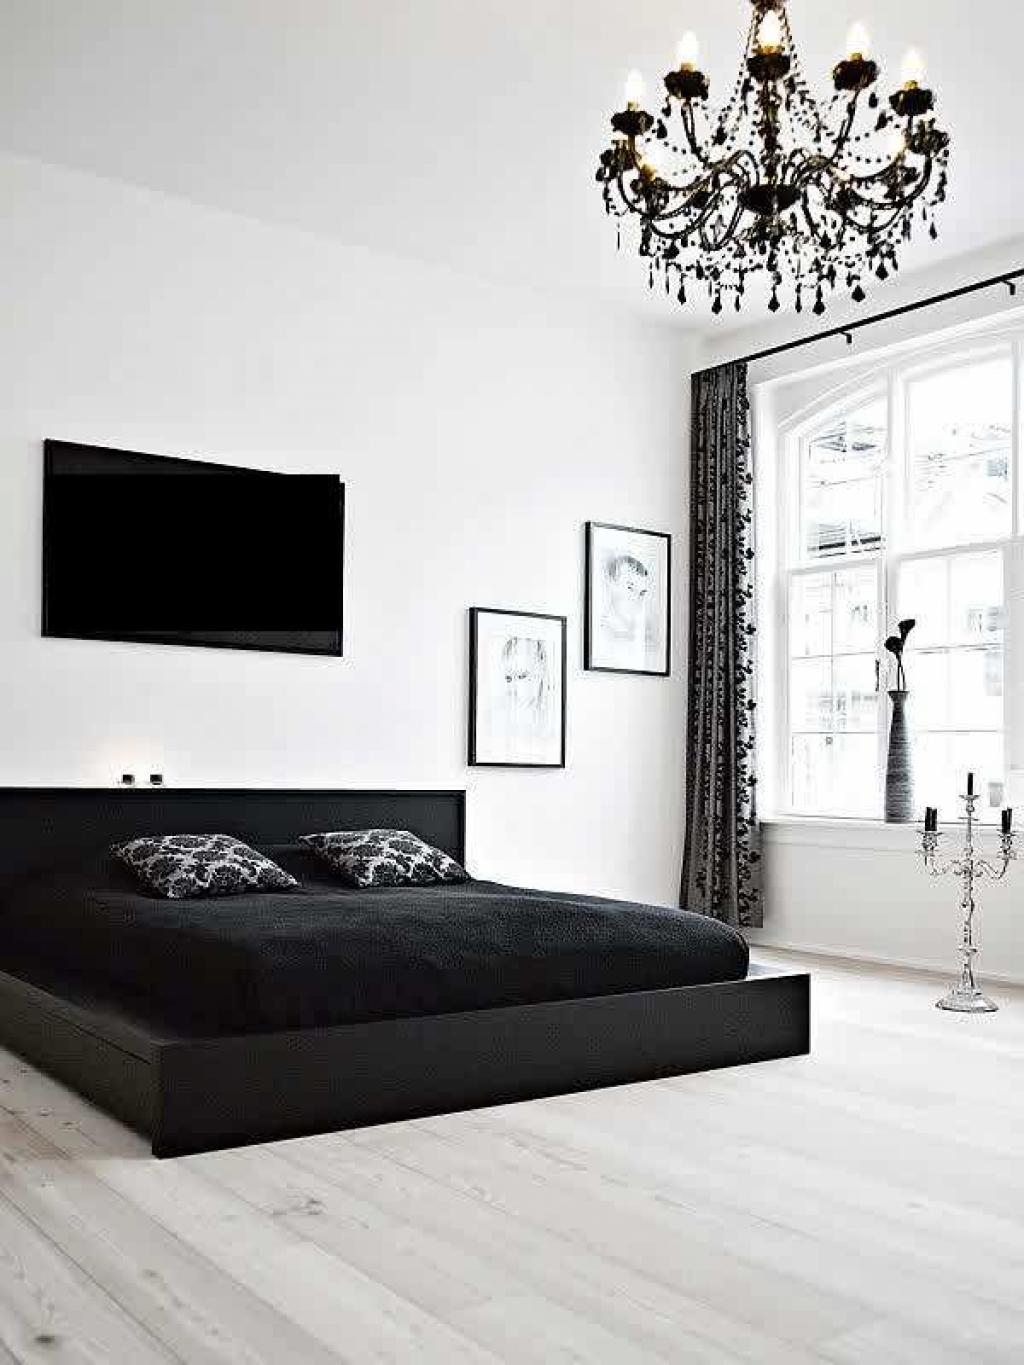 alluring-black-bedroom-decorating-ideas-for-men-with-black-and-white-colors-decor